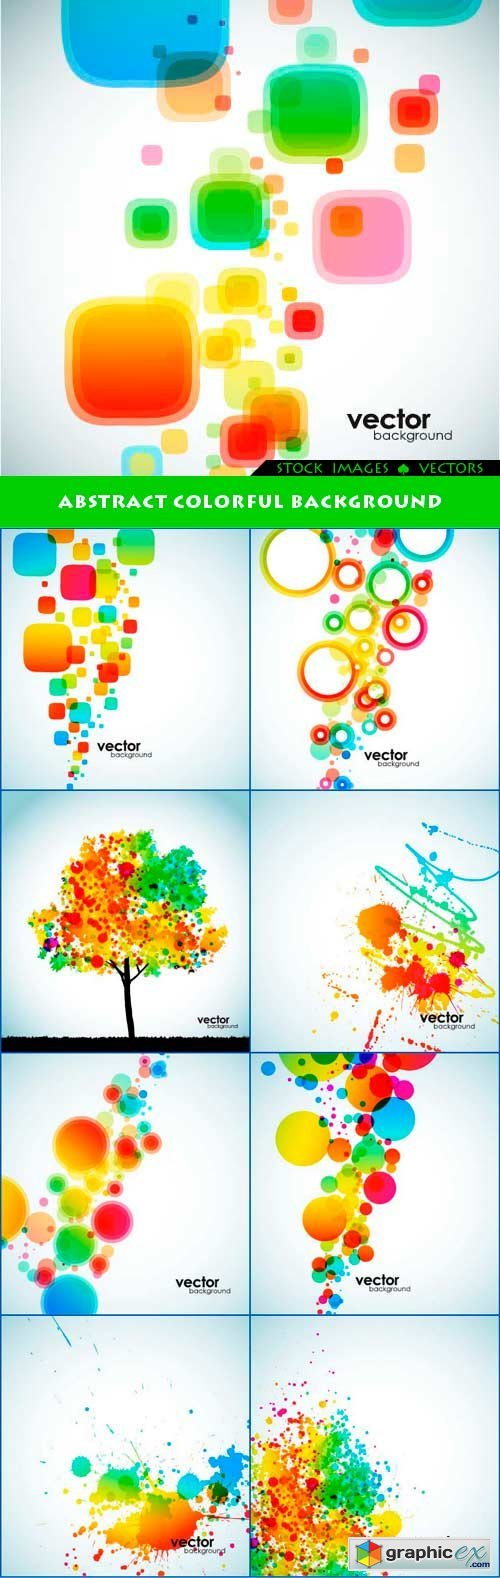 Abstract colorful background 10x EPS